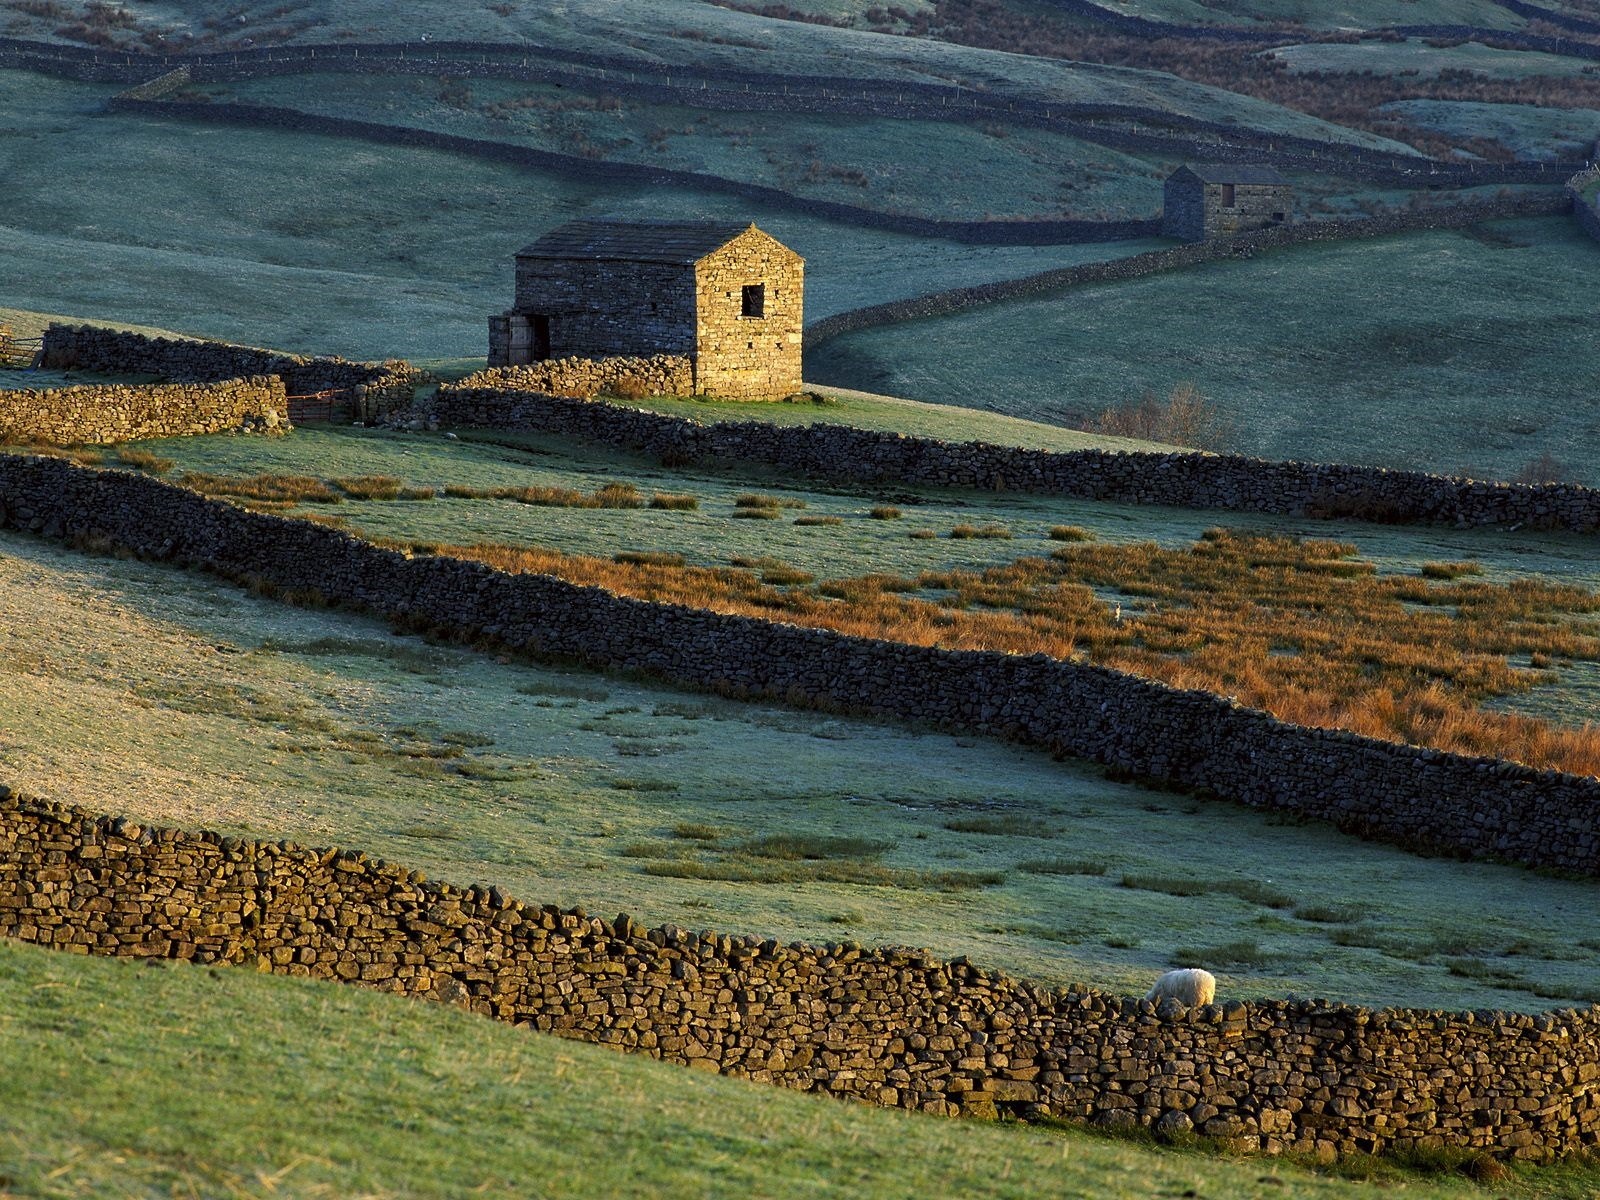 Stone house, fence, grass, sheep 1600x1200 wallpaper